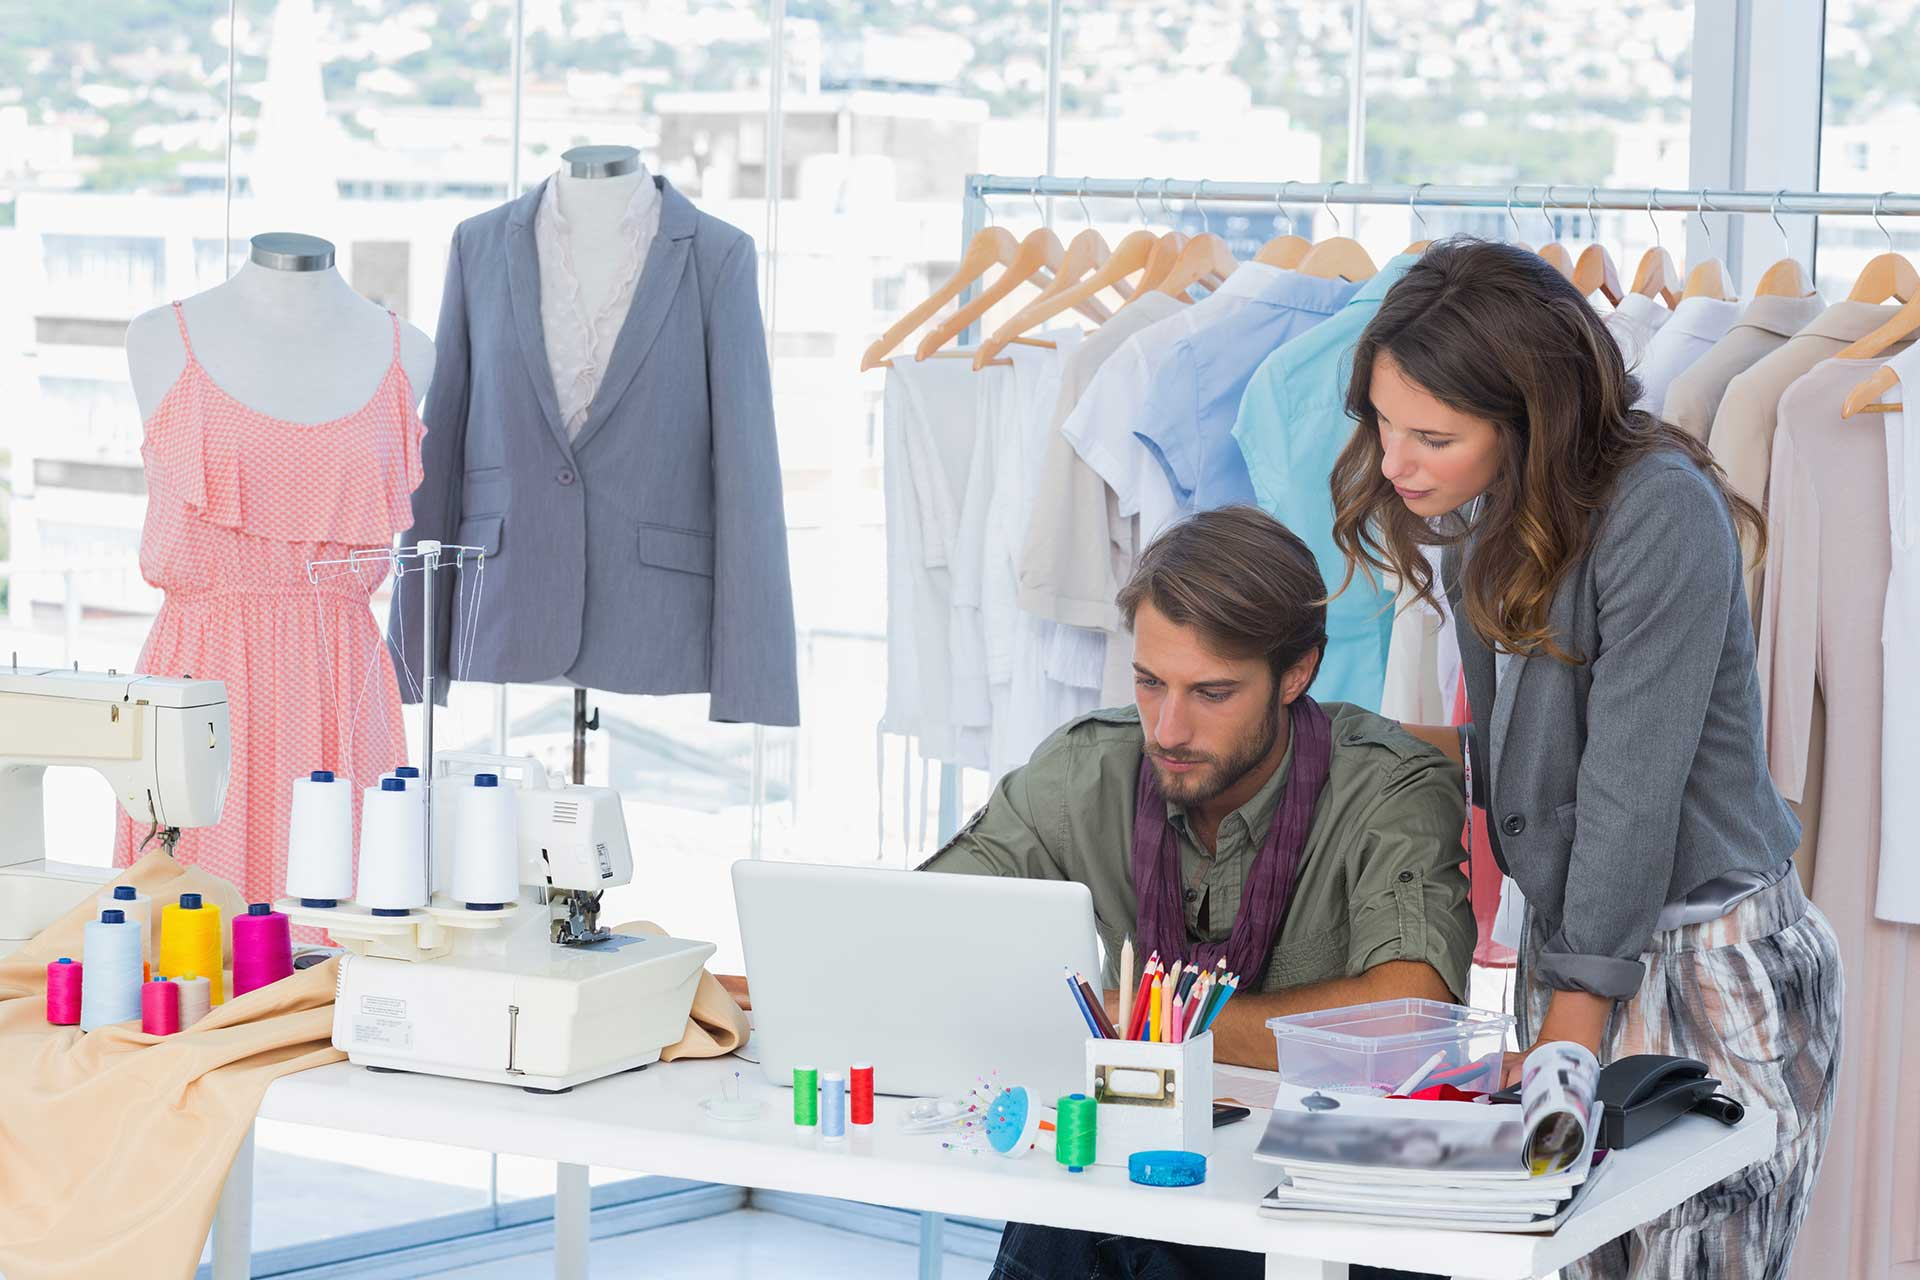 diplomado en fashion business and management